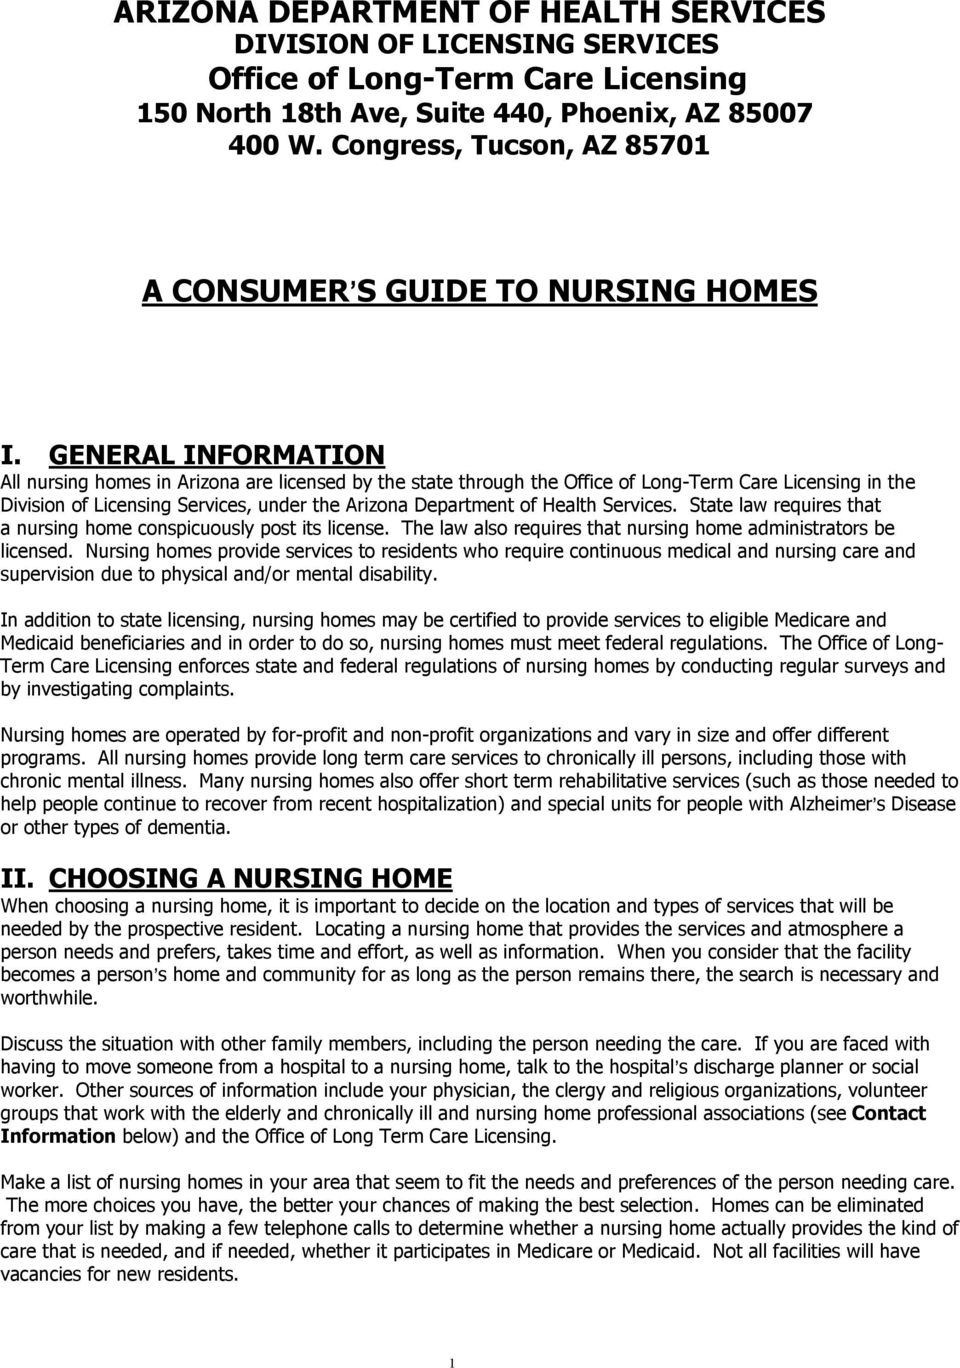 GENERAL INFORMATION All nursing homes in Arizona are licensed by the state through the Office of Long-Term Care Licensing in the Division of Licensing Services, under the Arizona Department of Health